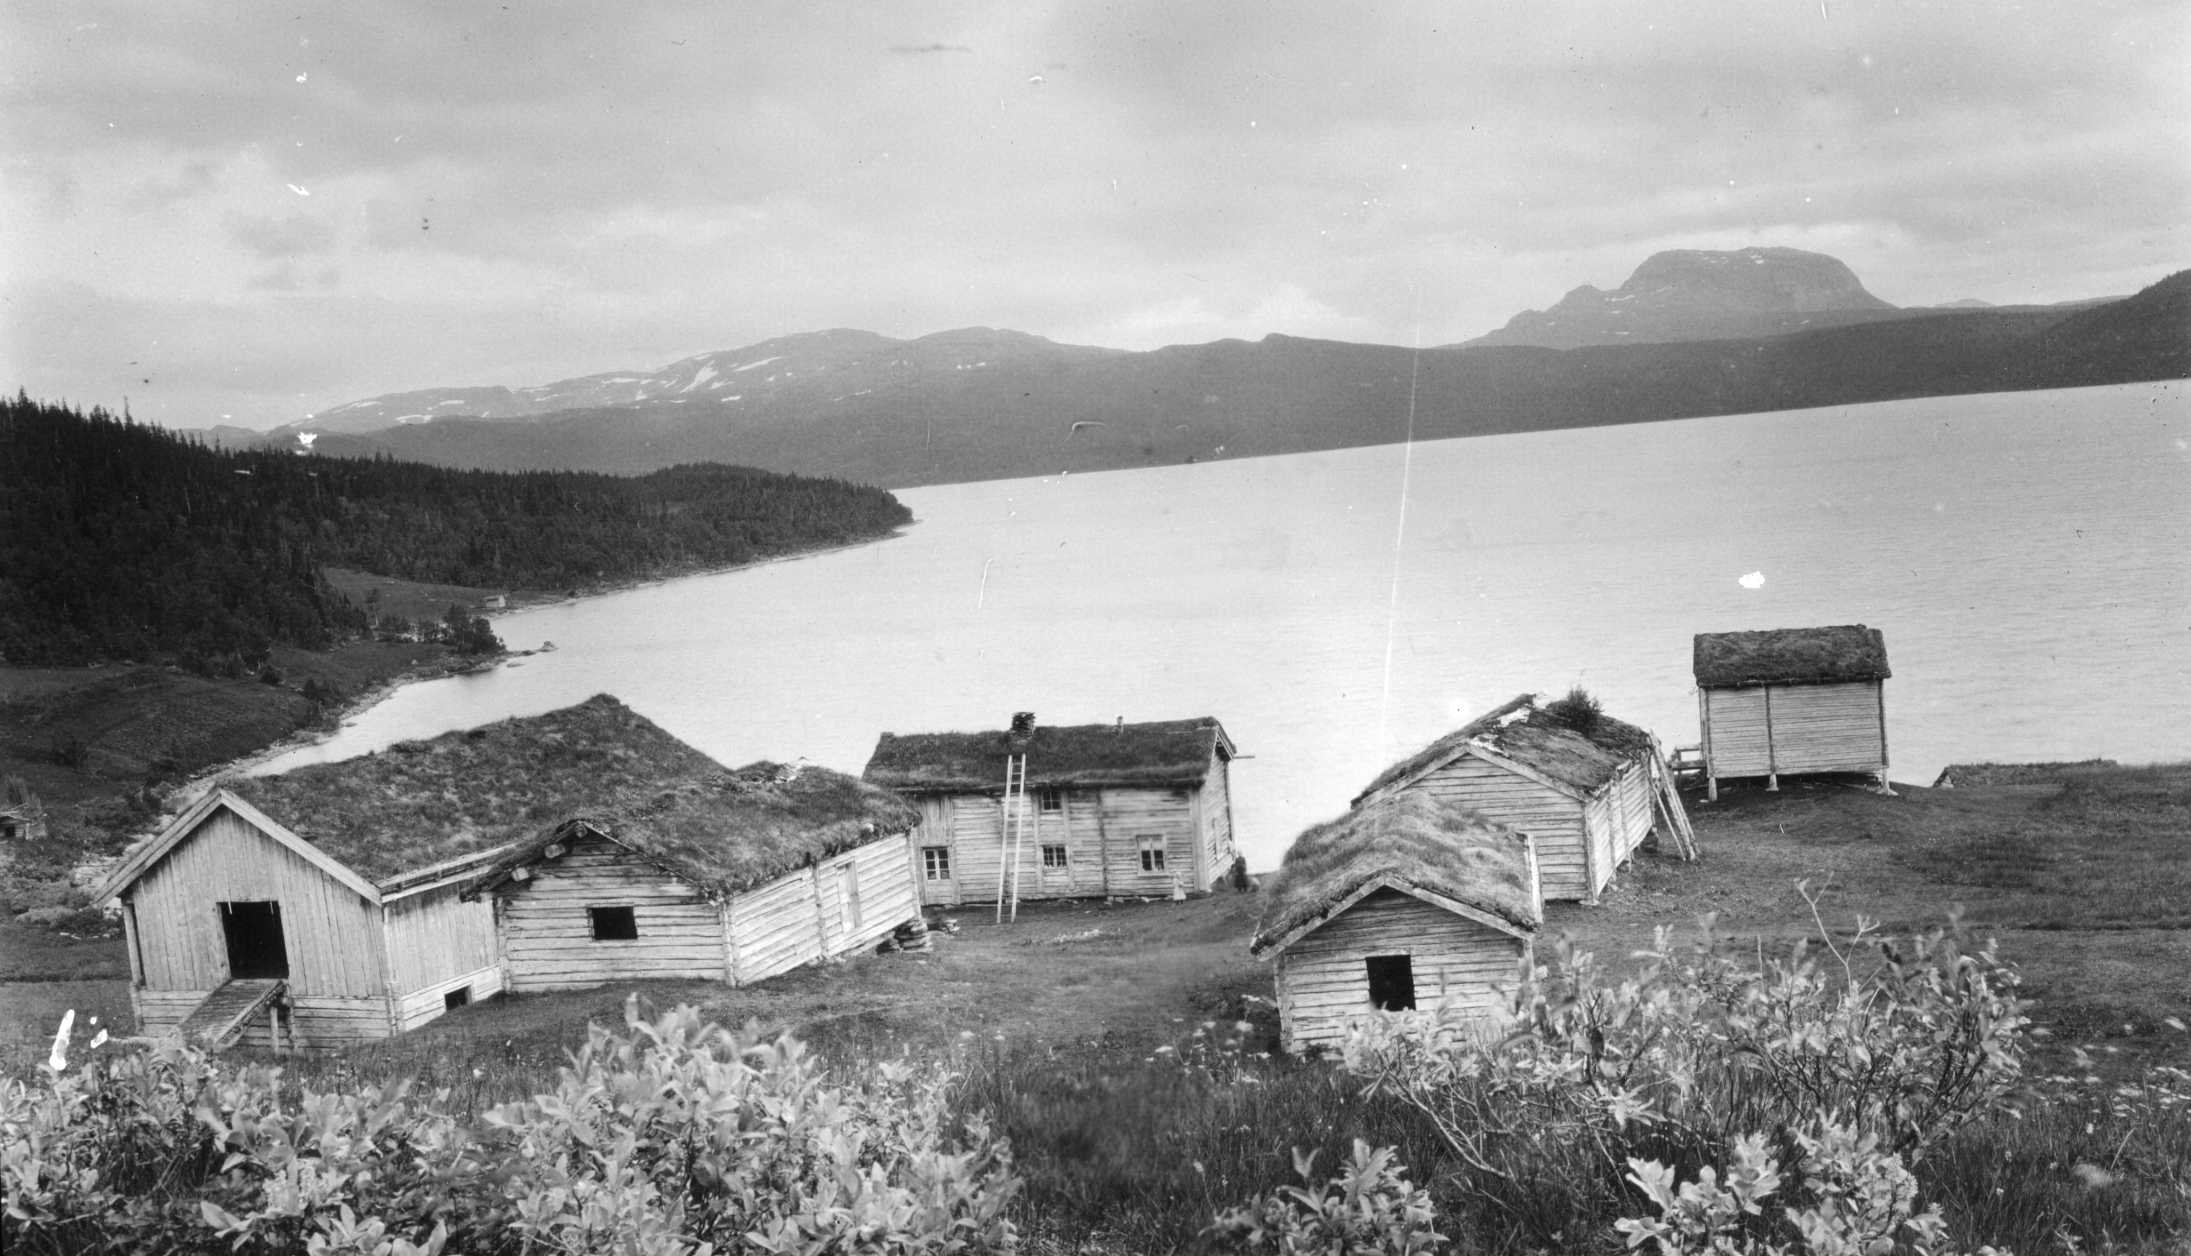 The farm Røssvassholmen and the lake Røssvatnet - around 1900-1920. | Photo: Severin Worm-Petersen - Norsk teknisk museum cc by.